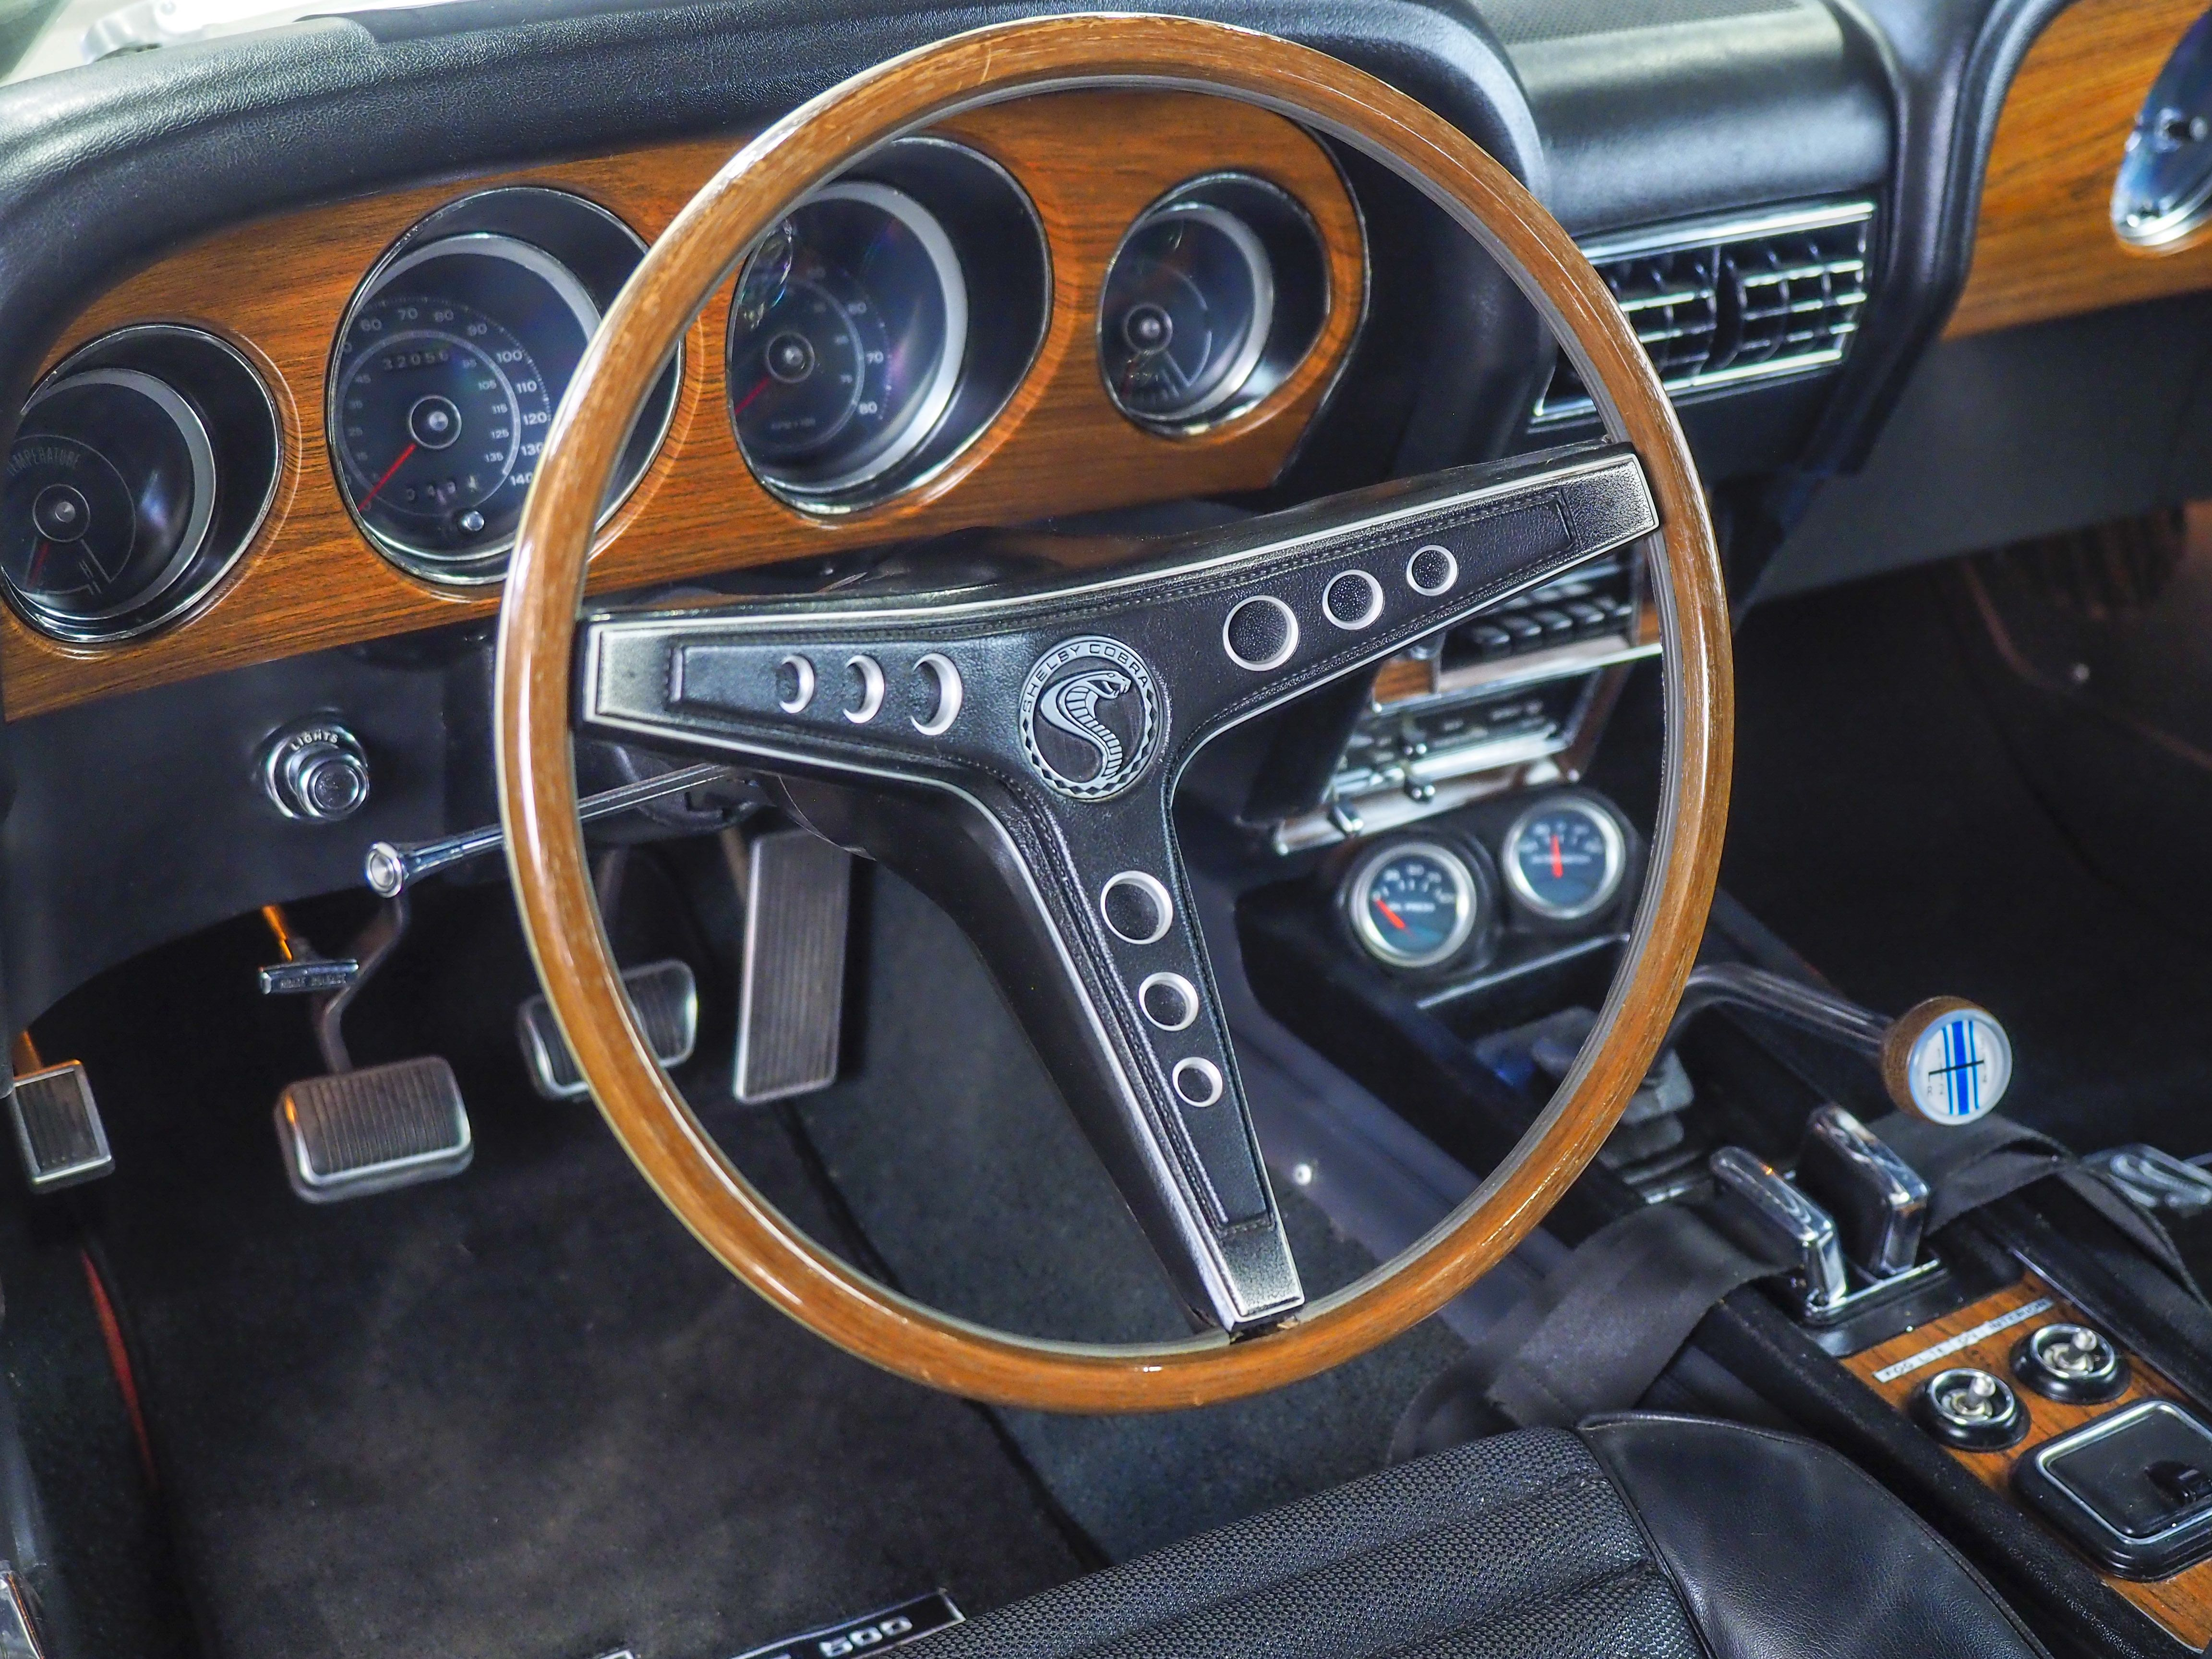 Pin By Cars Remember When On Showroom Cars Ford Mustang Shelby Gt500 1966 Ford Mustang Mustang Shelby